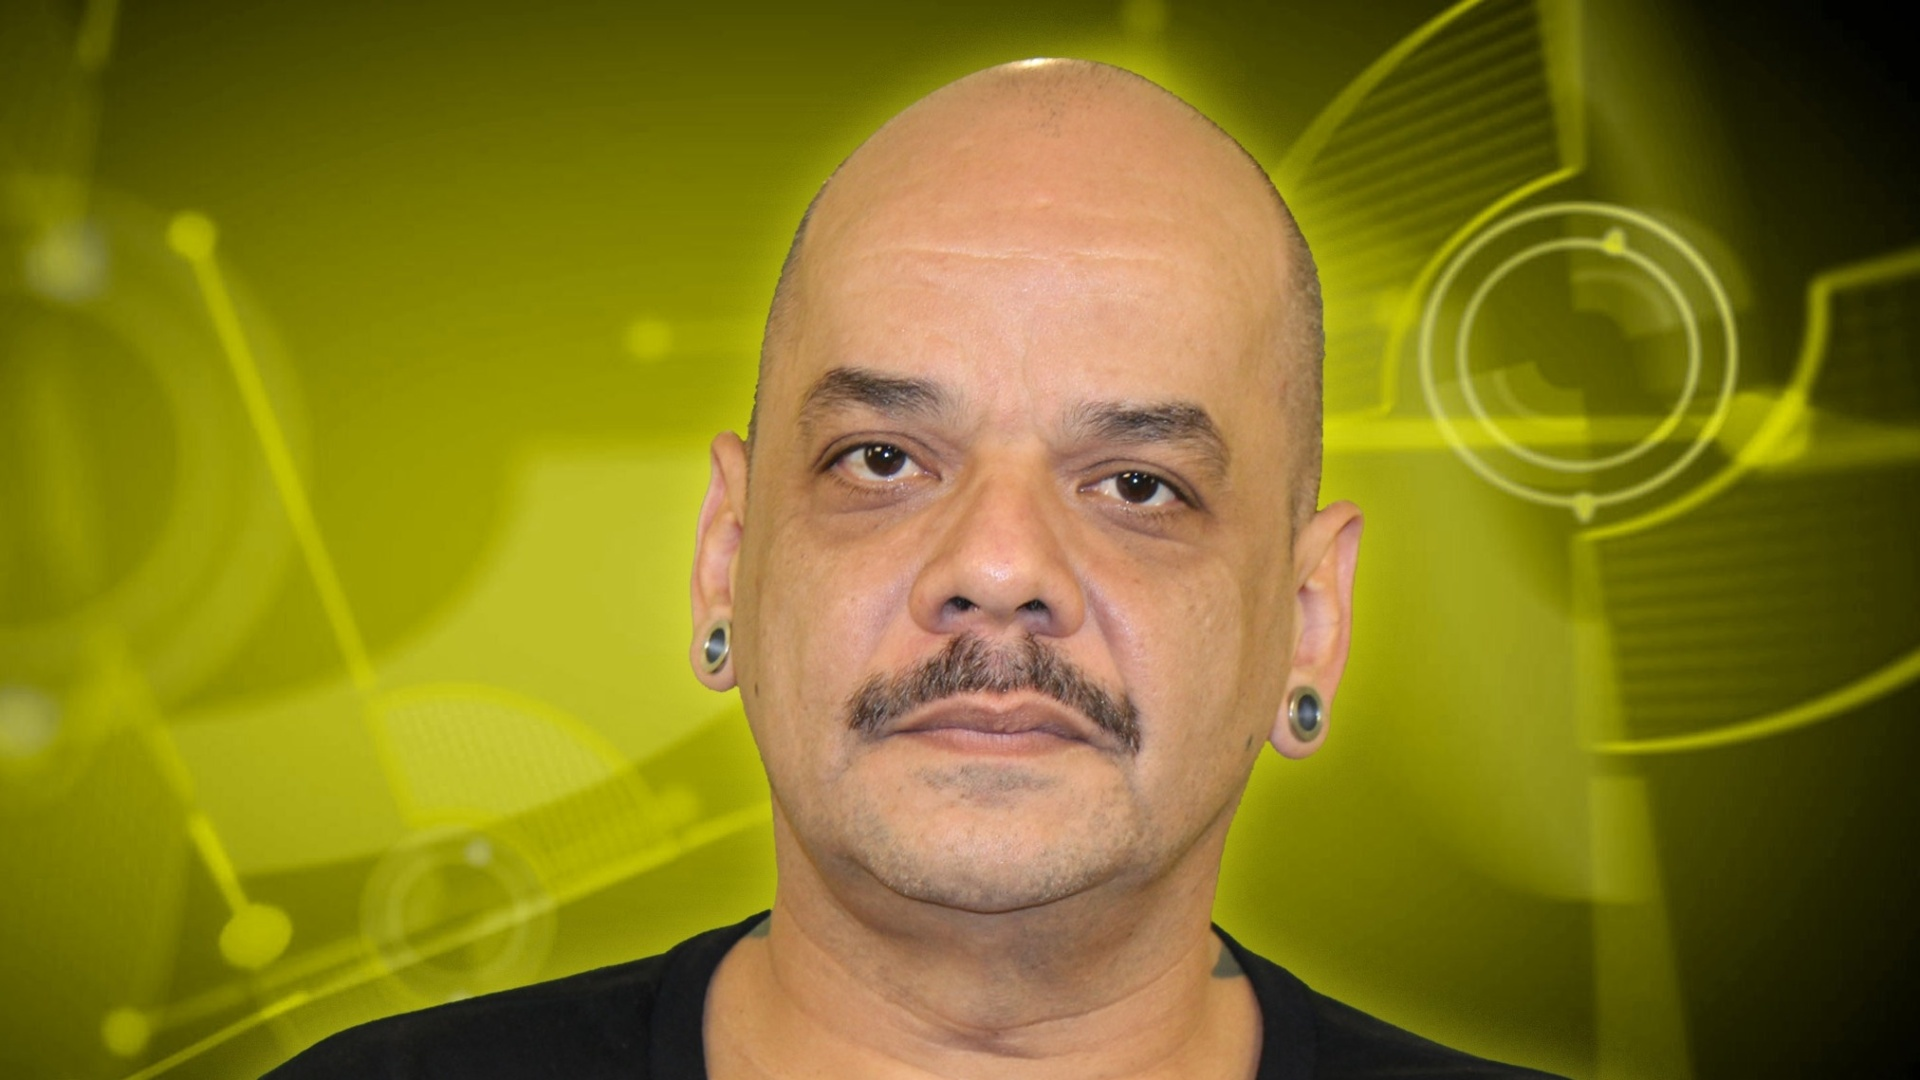 Joo Carvalho, participante do BBB12